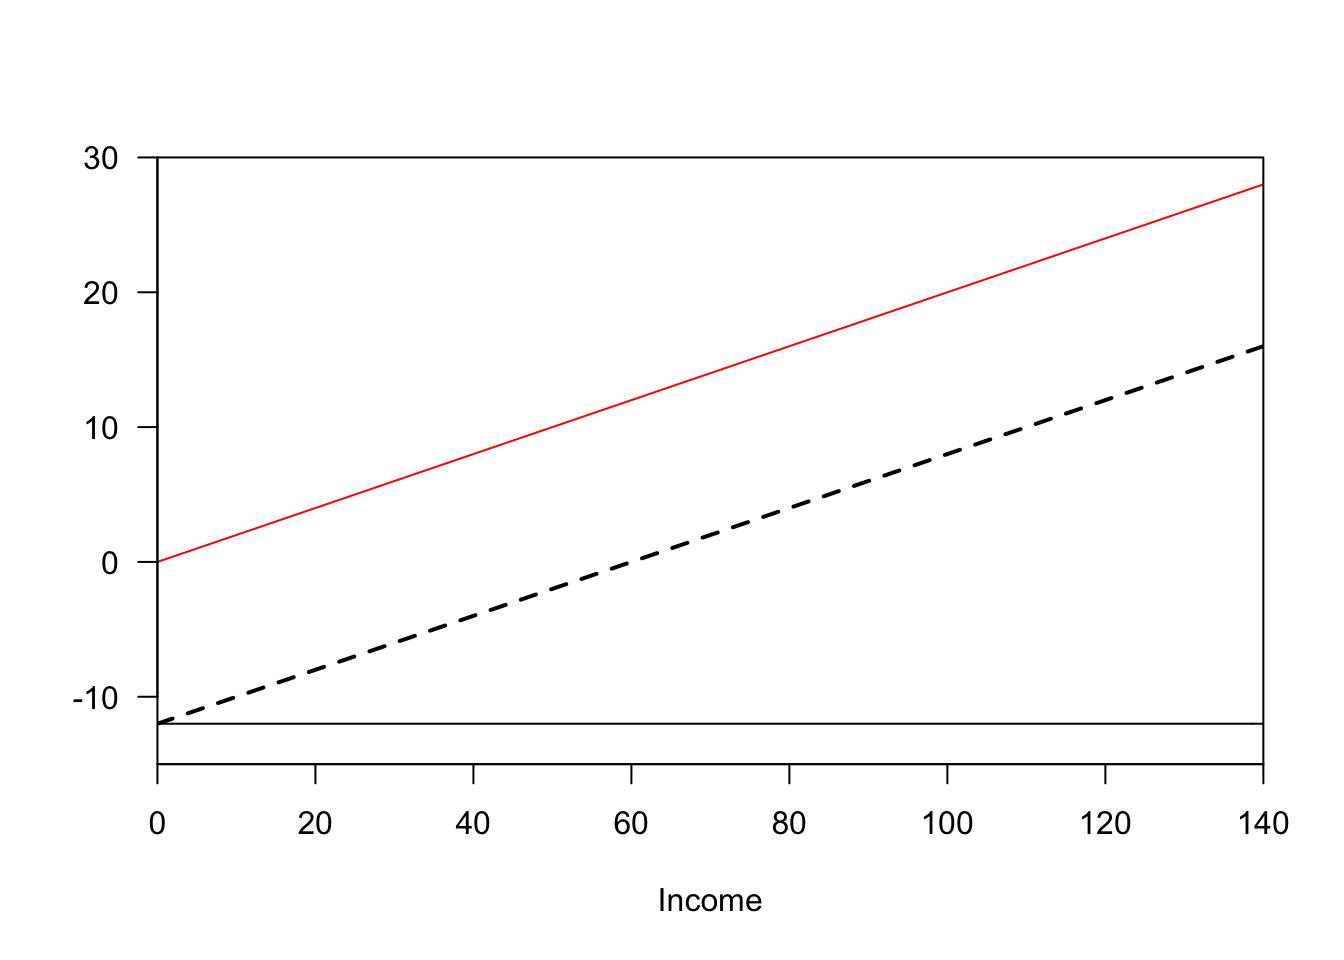 Two proposed policies. Taxes paid in red, benefits received in black. The policy on the left has universal benefits funded by a flat tax, while the one on the right has progressive taxes and benefits. However, the combined effect of the two policies (dashed lines) is identical.